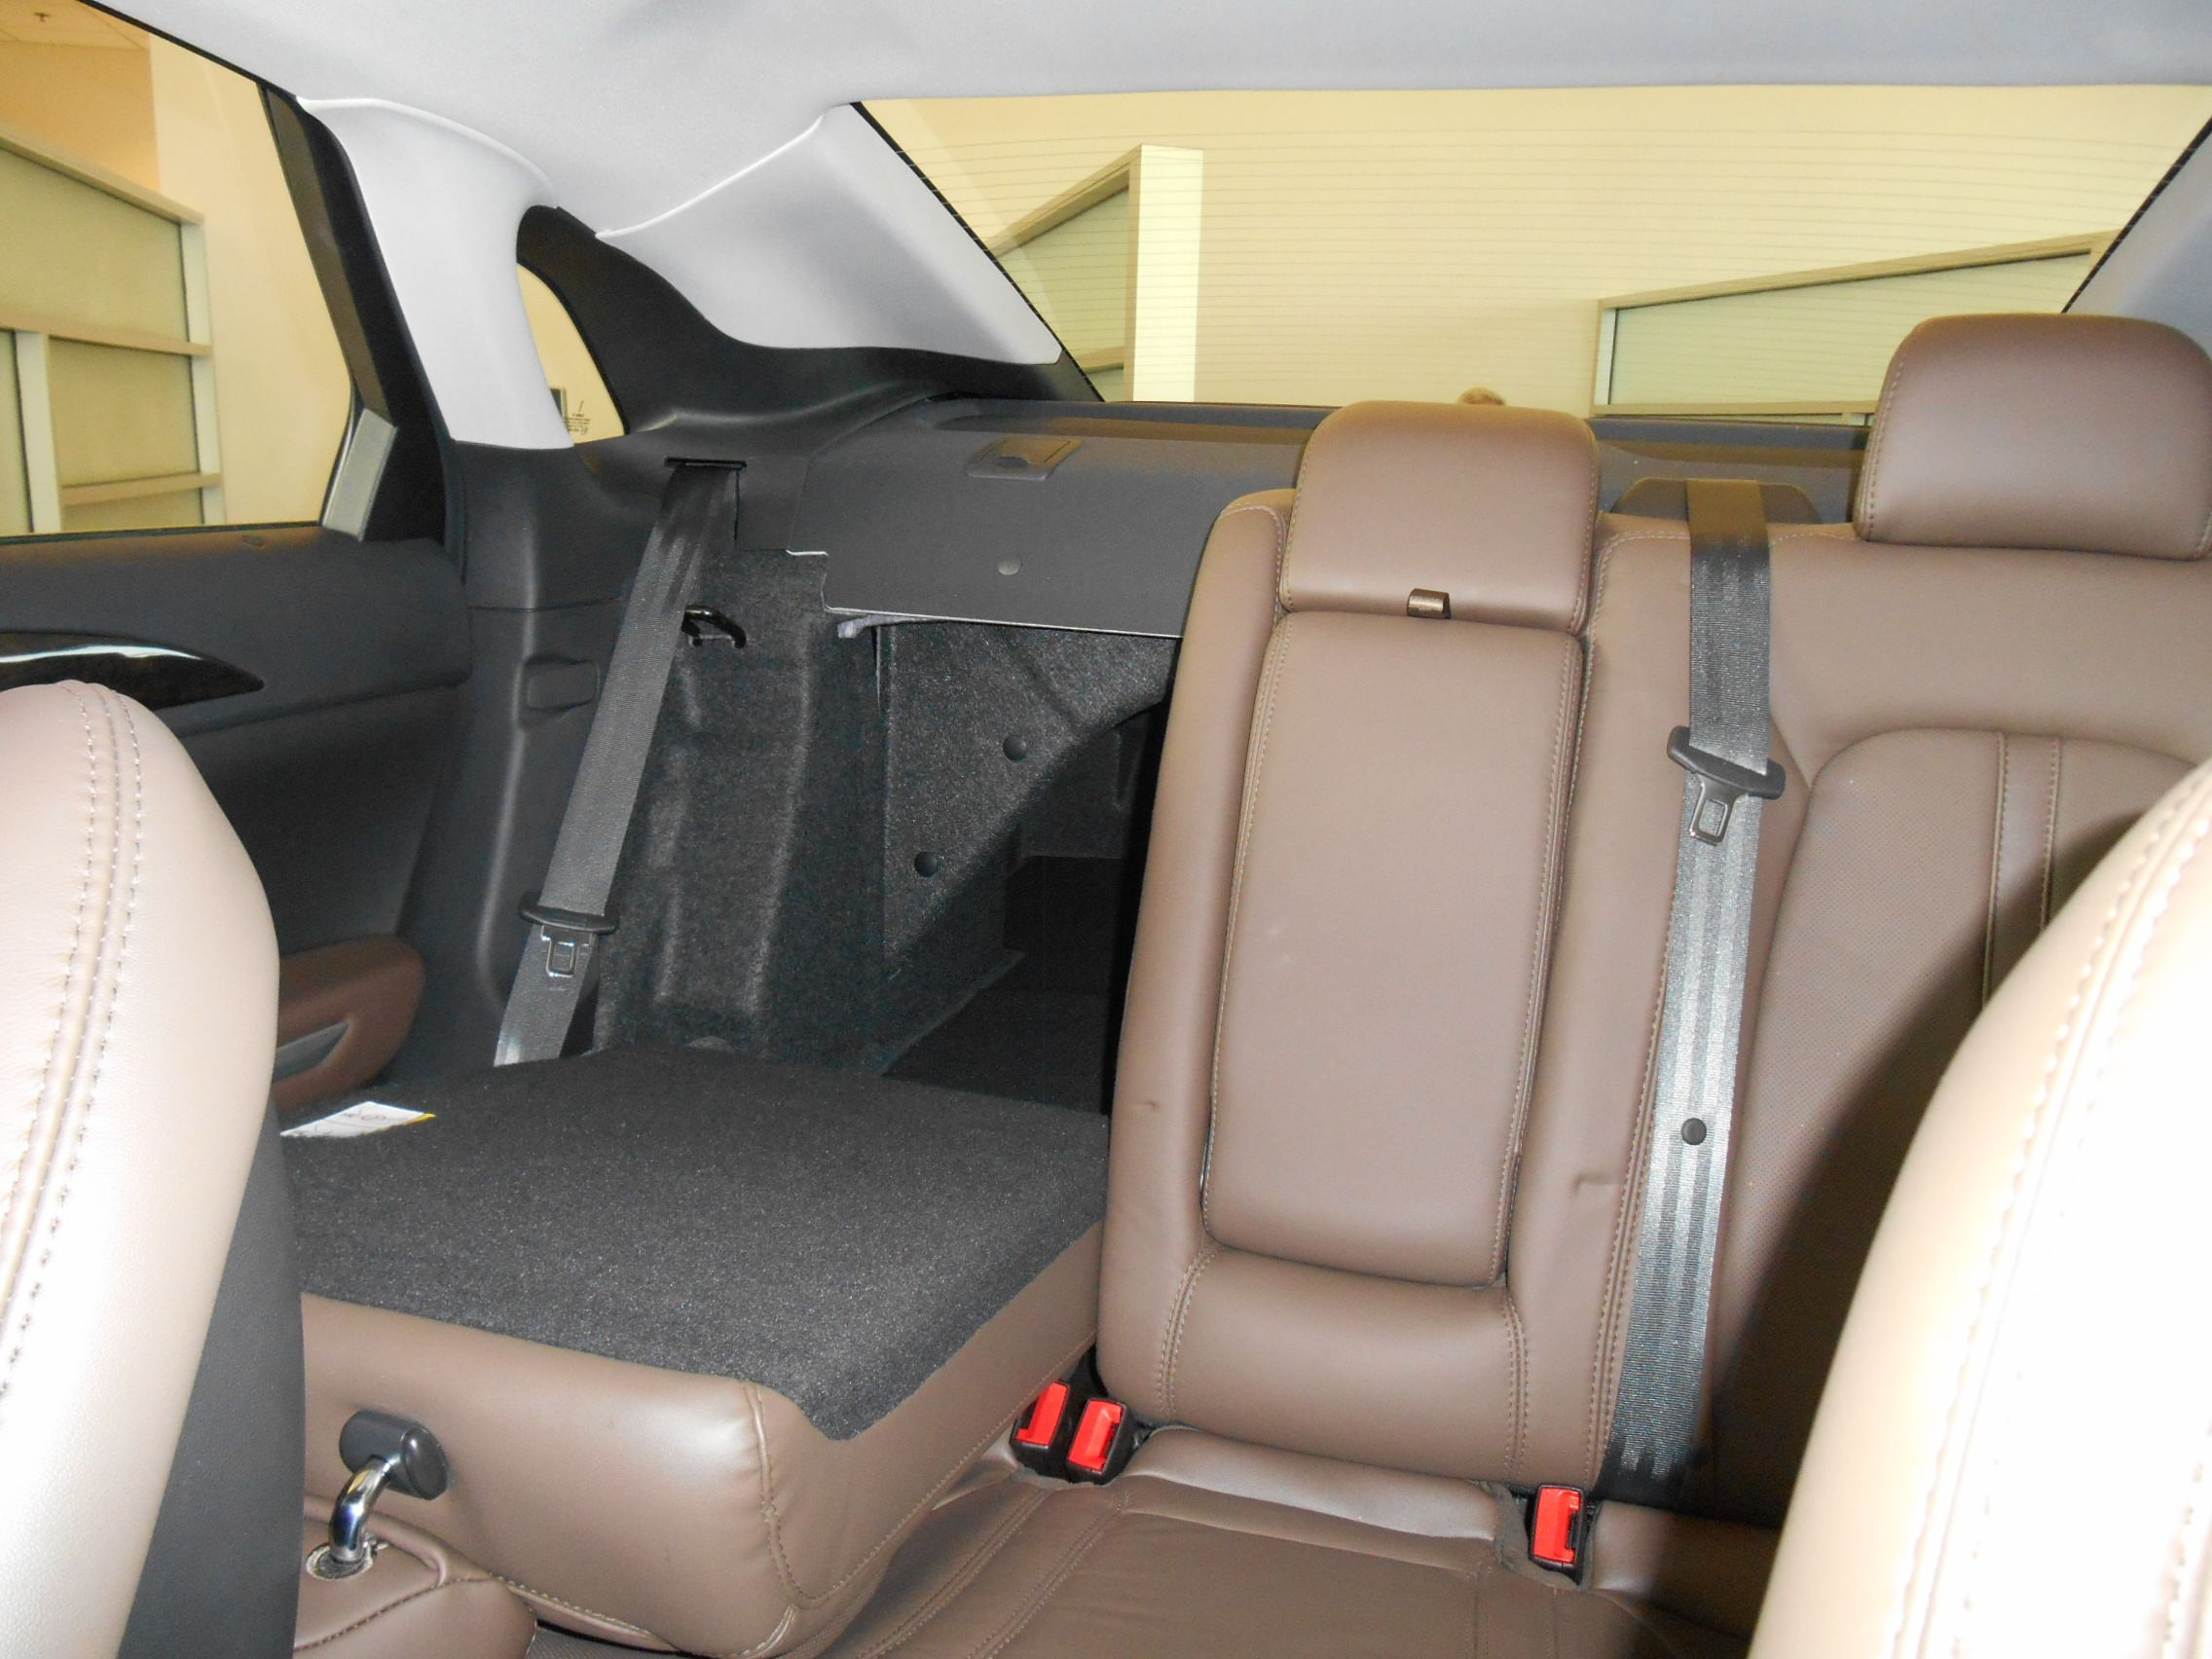 autos perfect bk fold dothan functionality lincoln down seats back on mkz for dodge best al images dealership pinterest